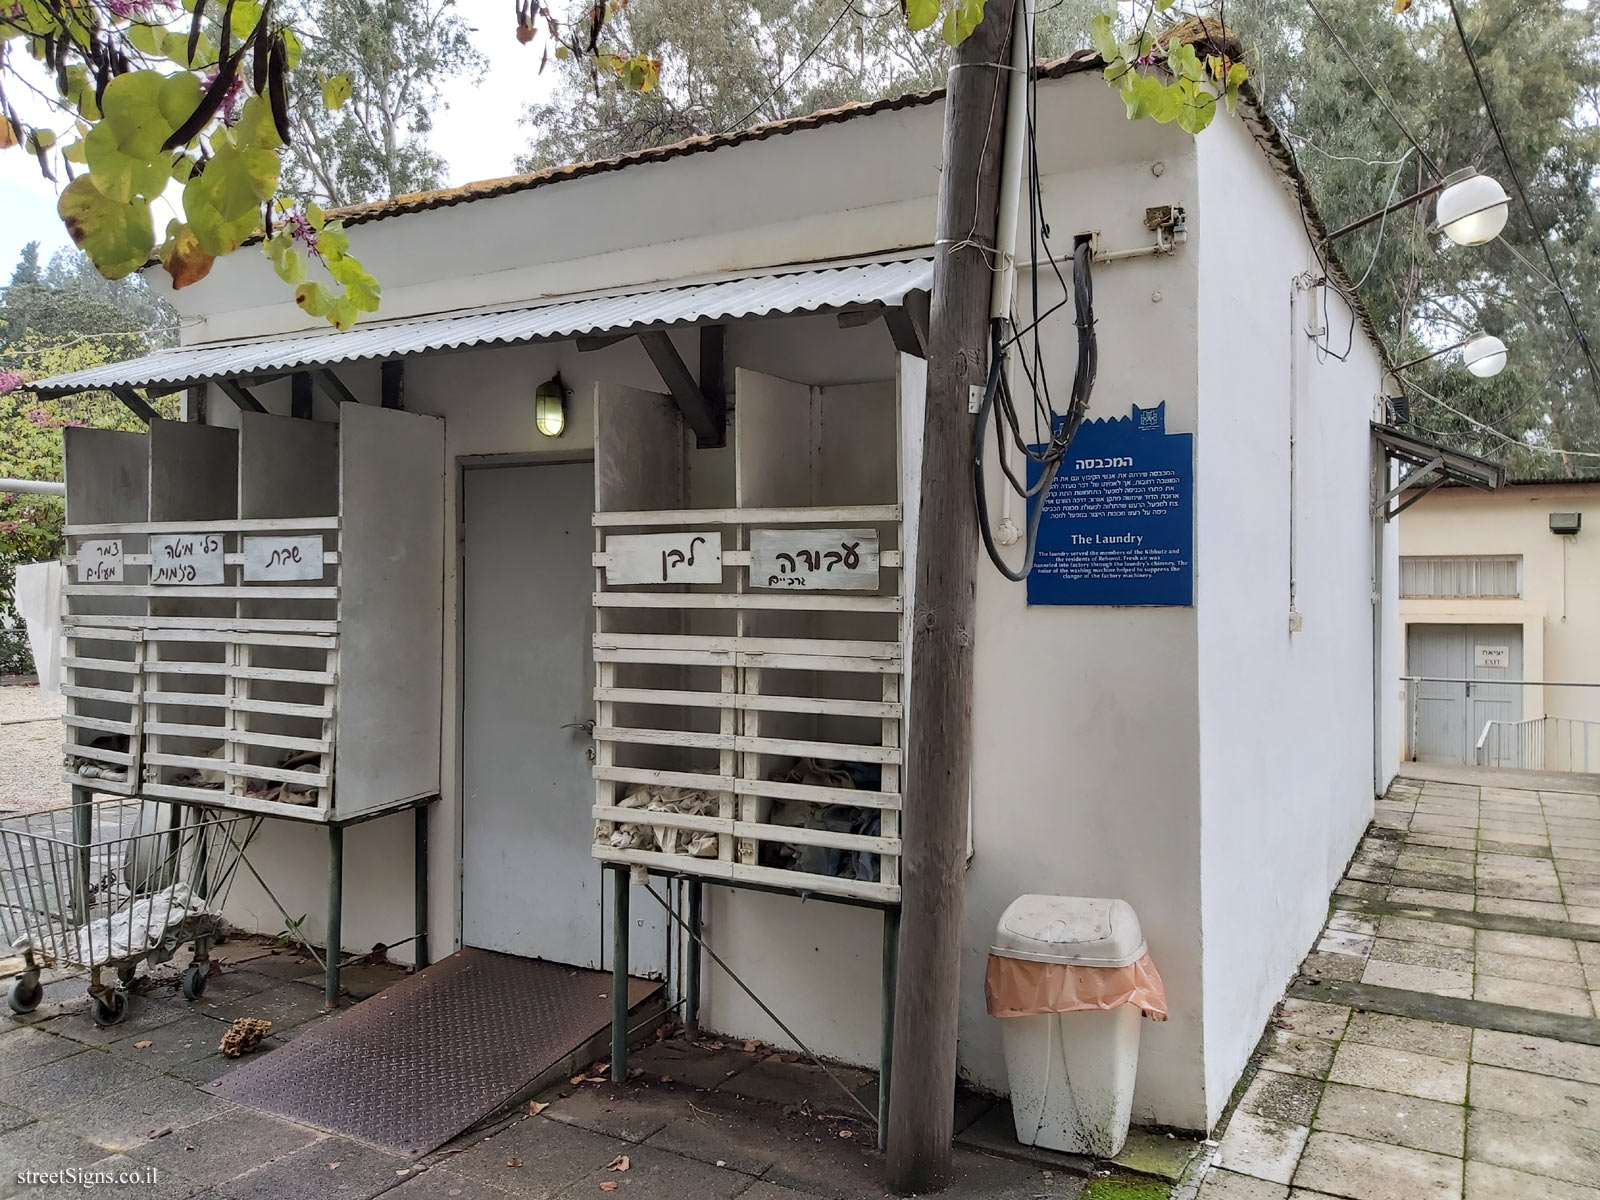 Rehovot - Heritage Sites in Israel - Ayalon Institute - The Laundry - David Fikes St 1, Rehovot, Israel